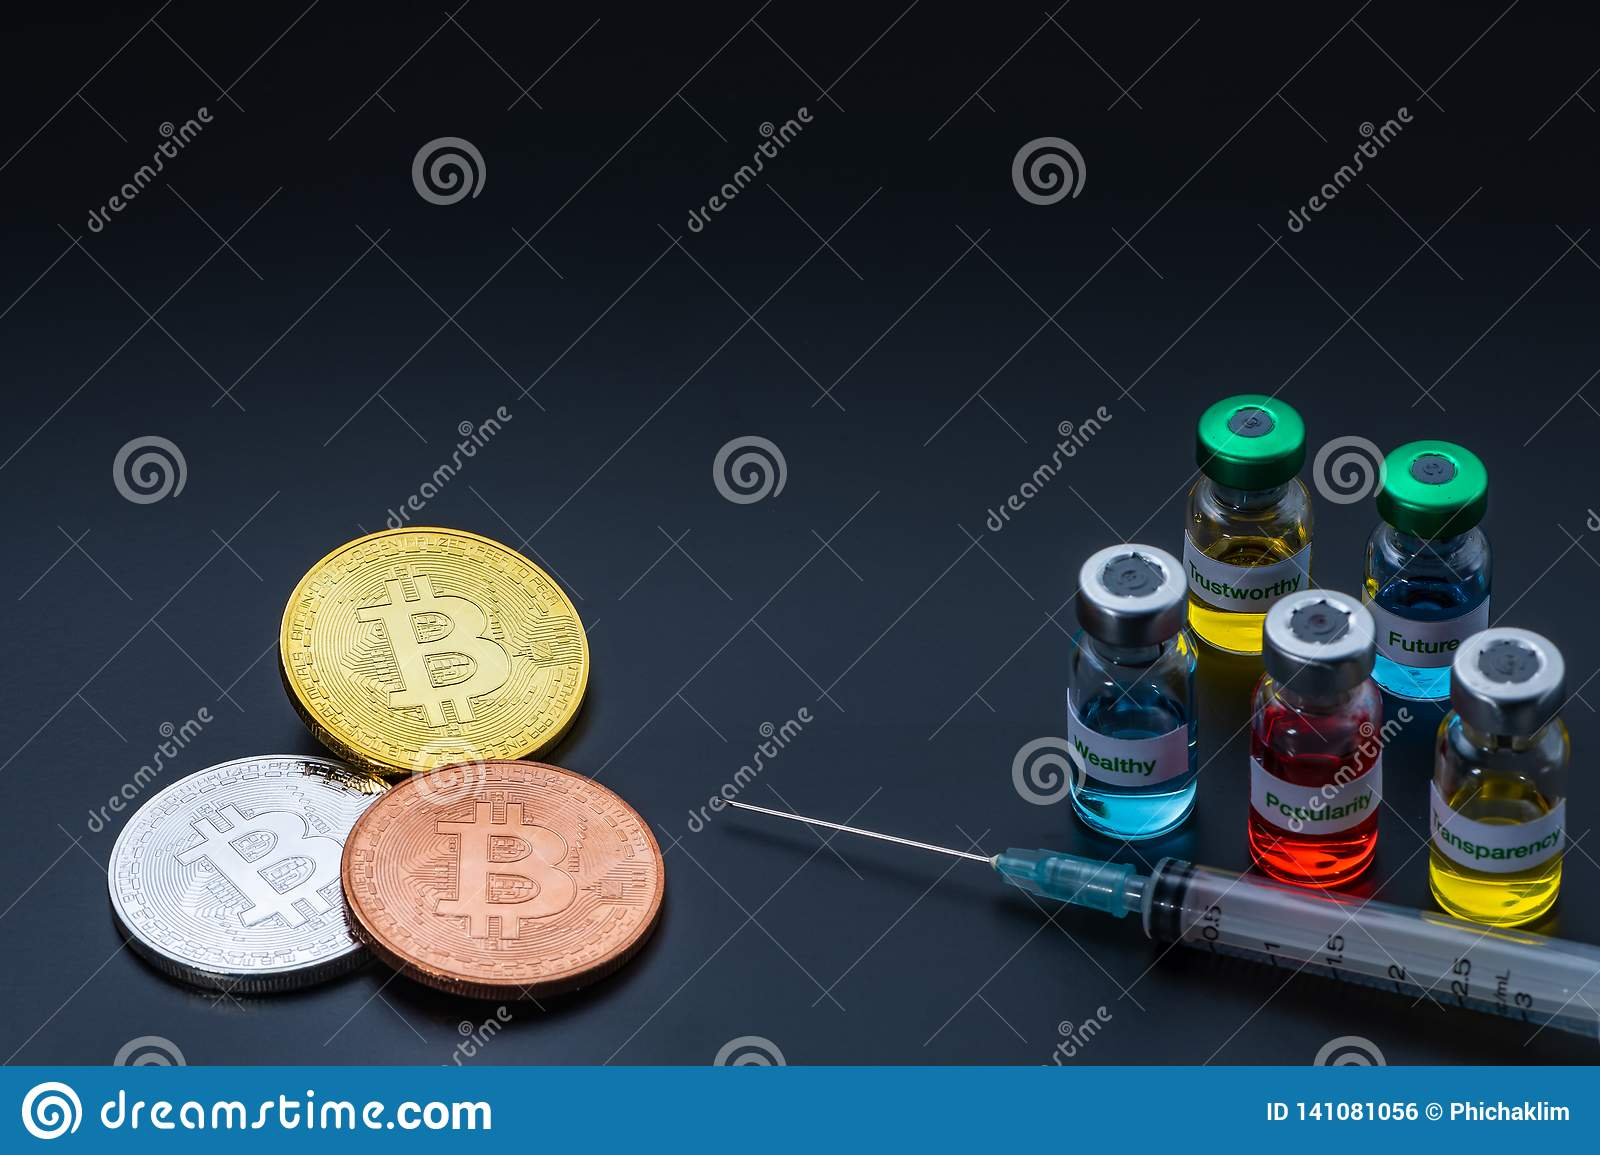 what attribute of money is unique to cryptocurrency